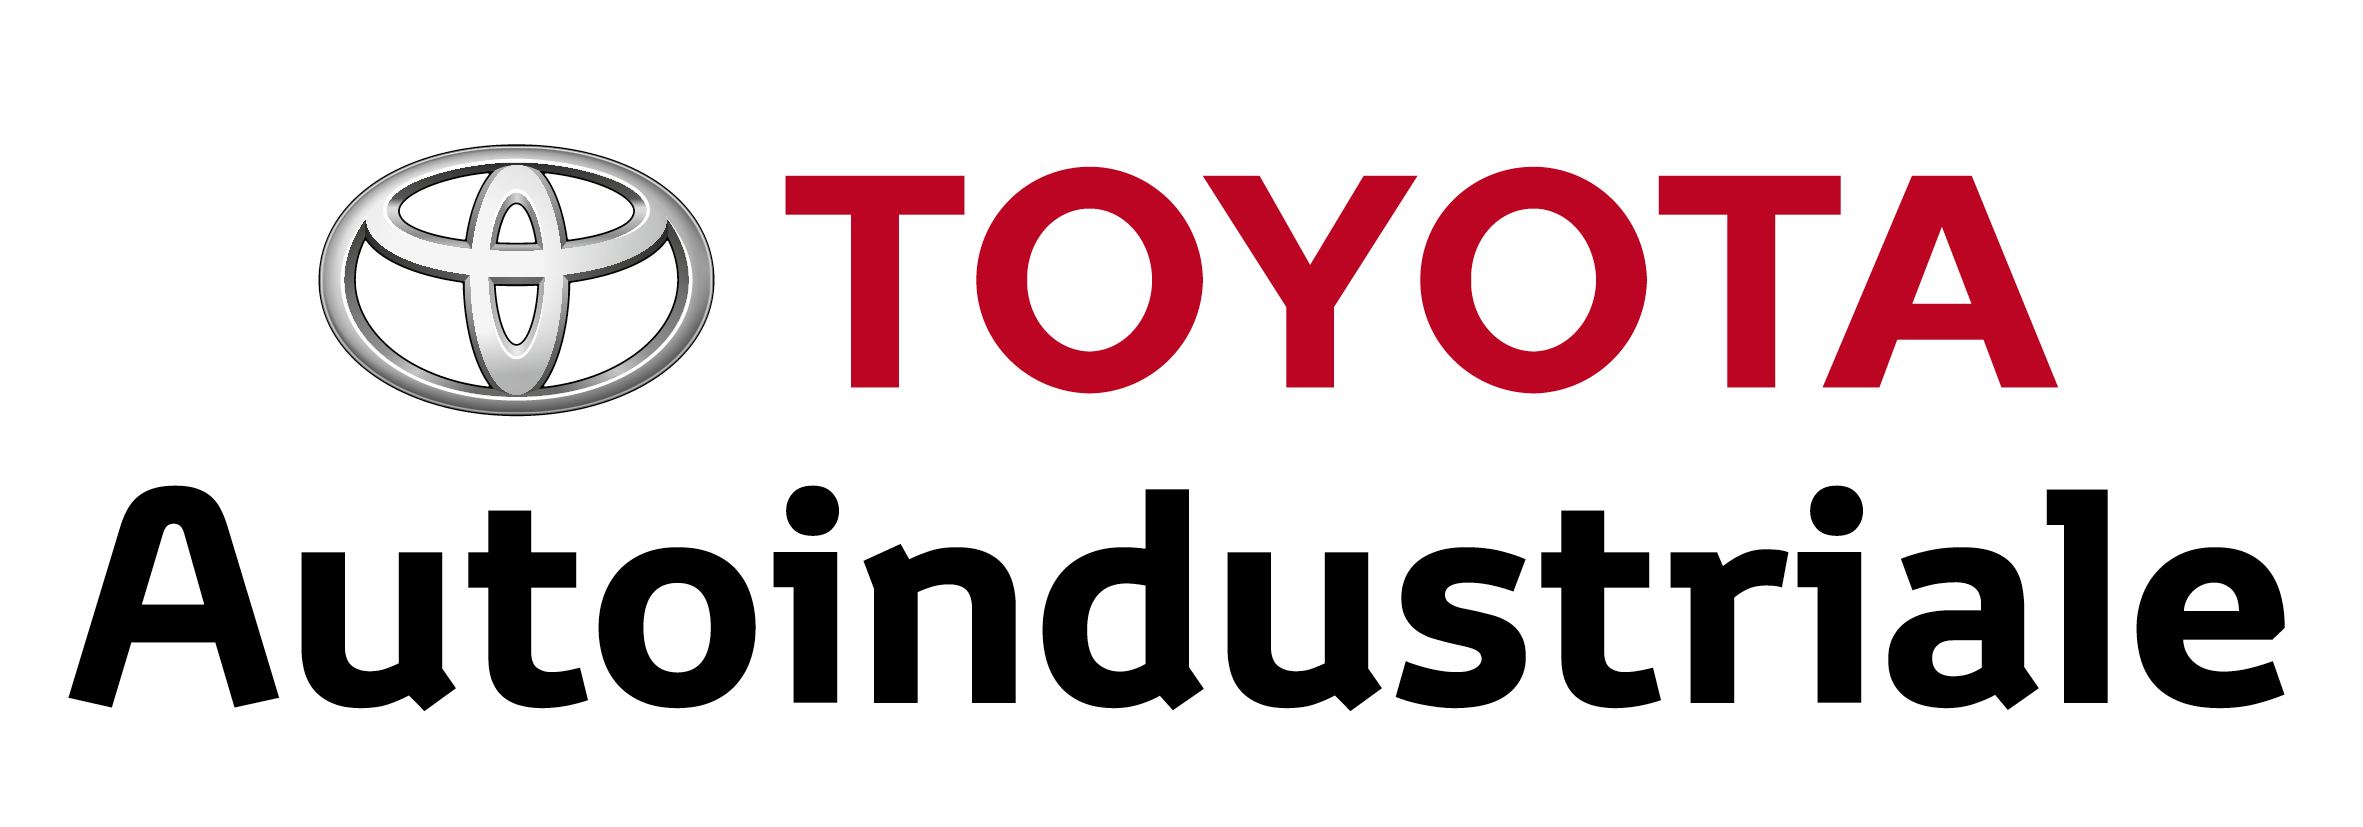 Toyota Autoindustriale